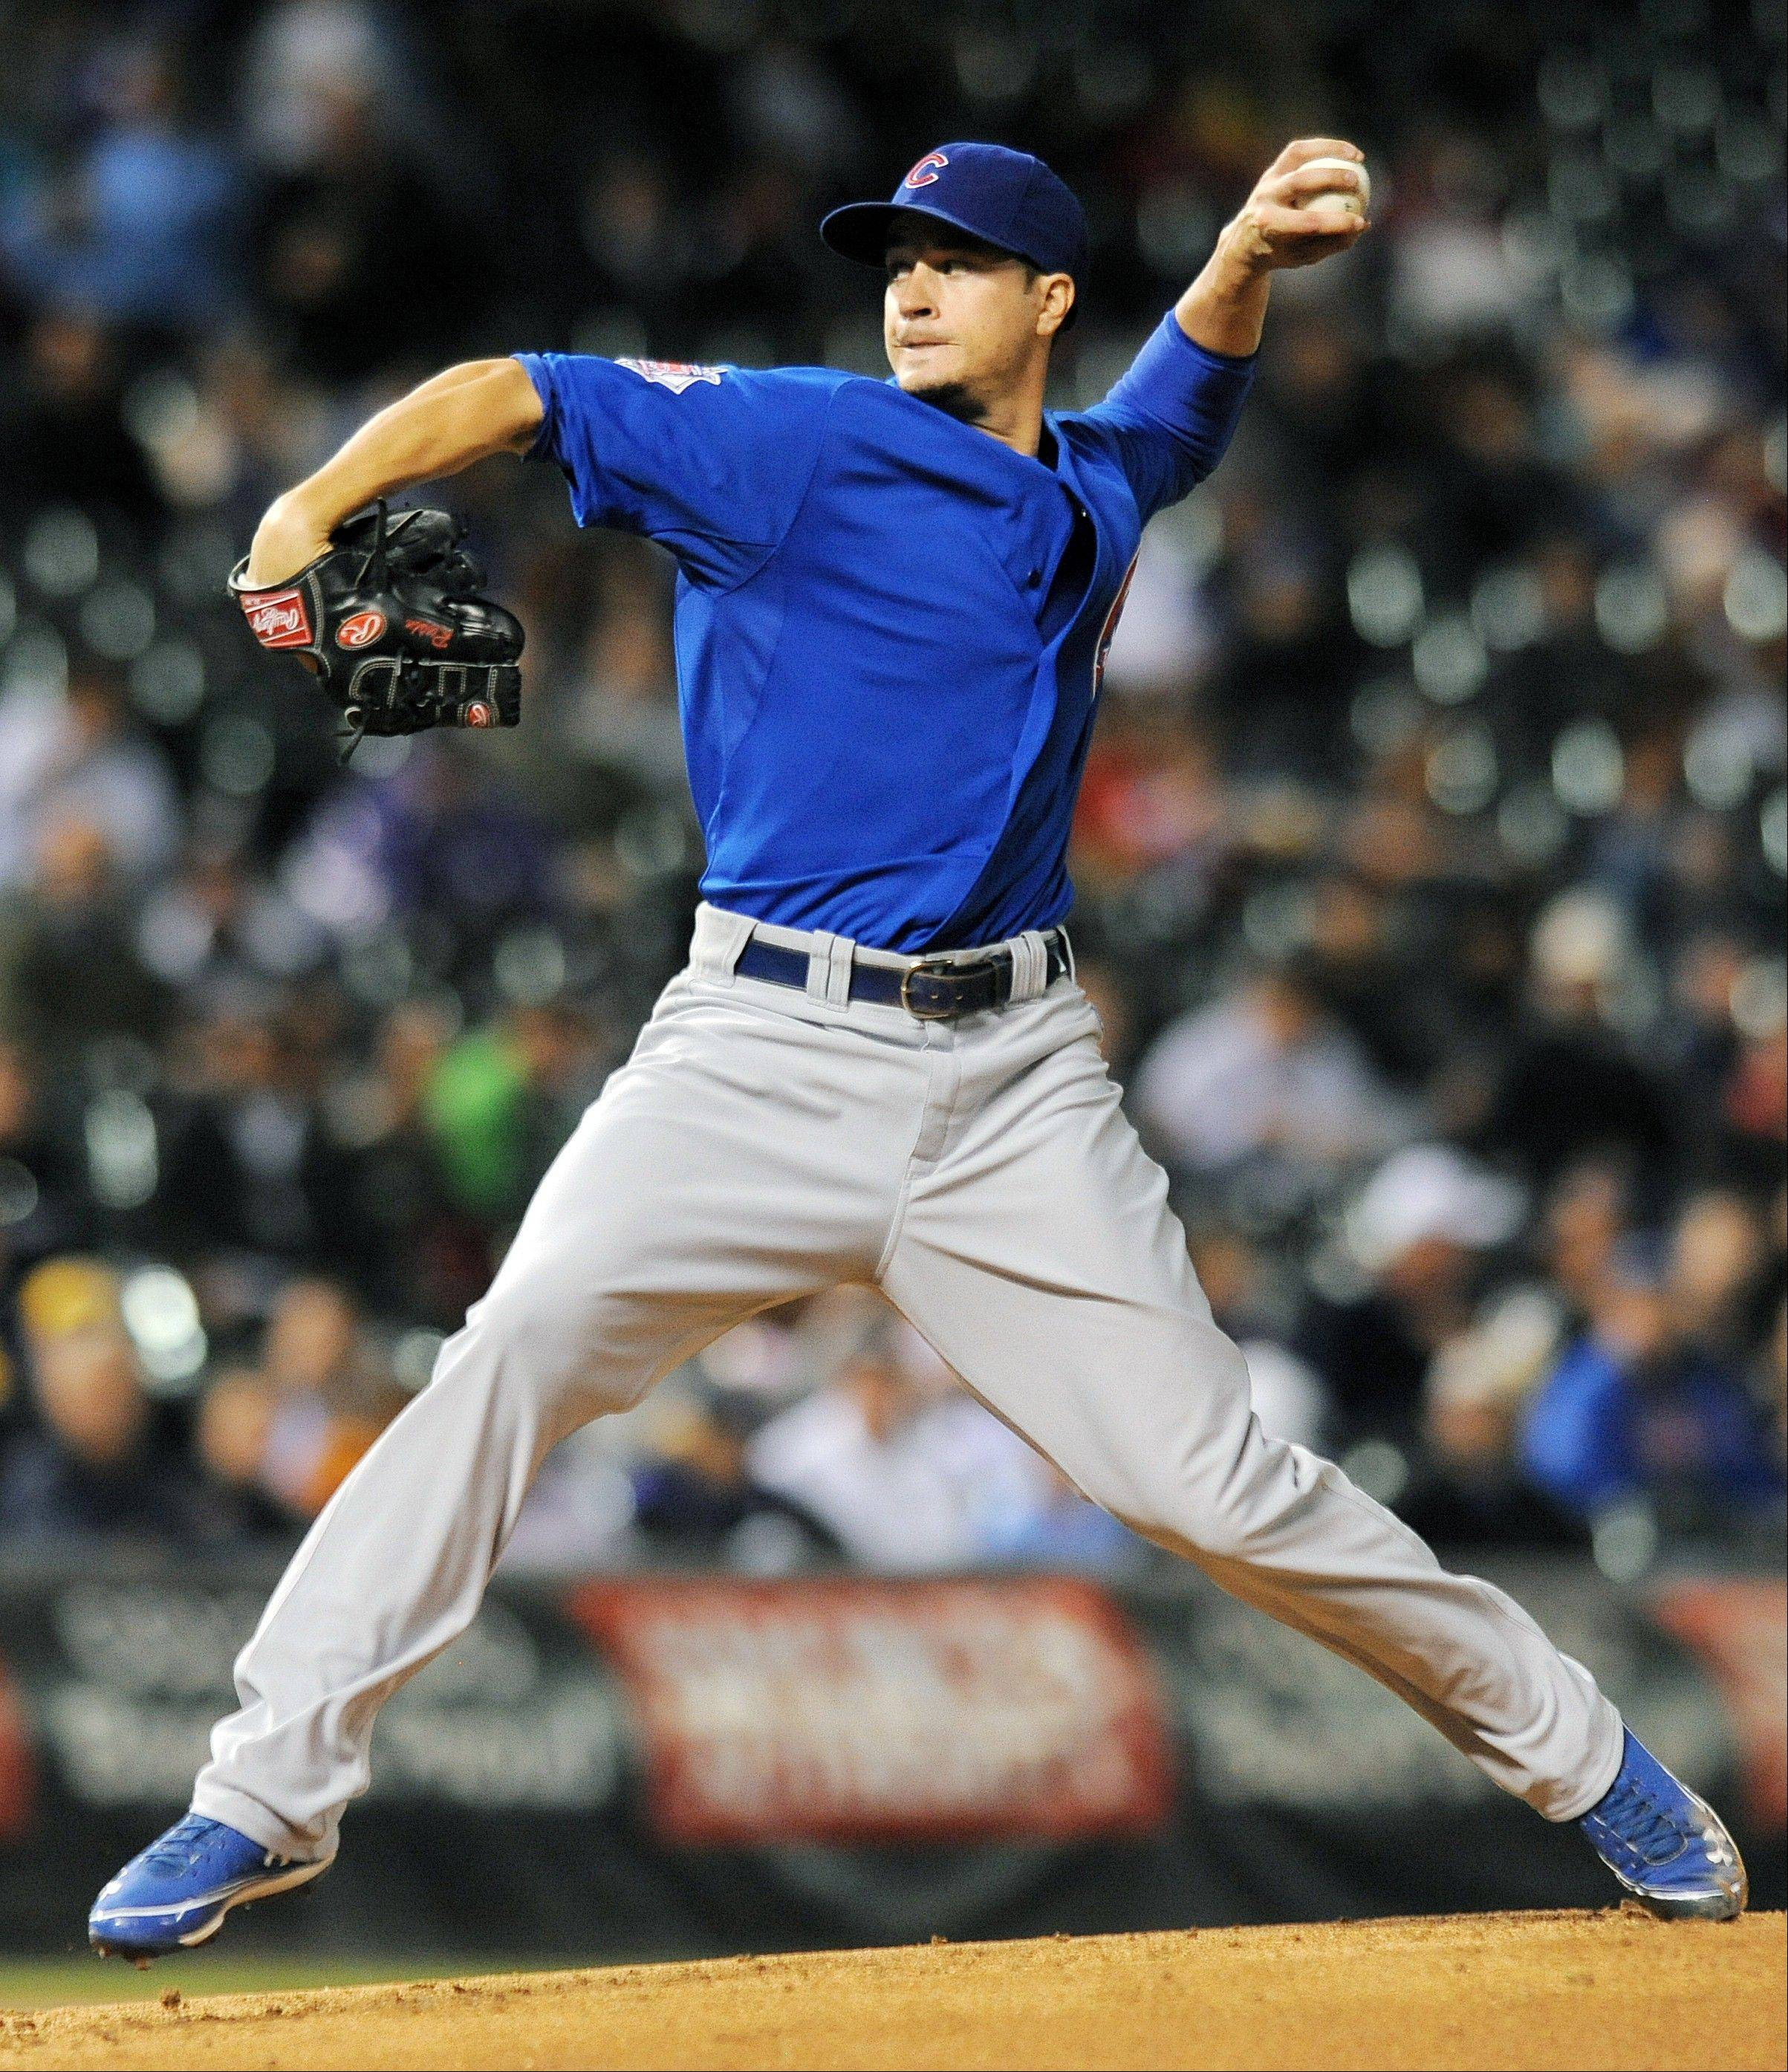 Cubs starter Chris Rusin throws in the first inning Tuesday at Coors Field against the Rockies.